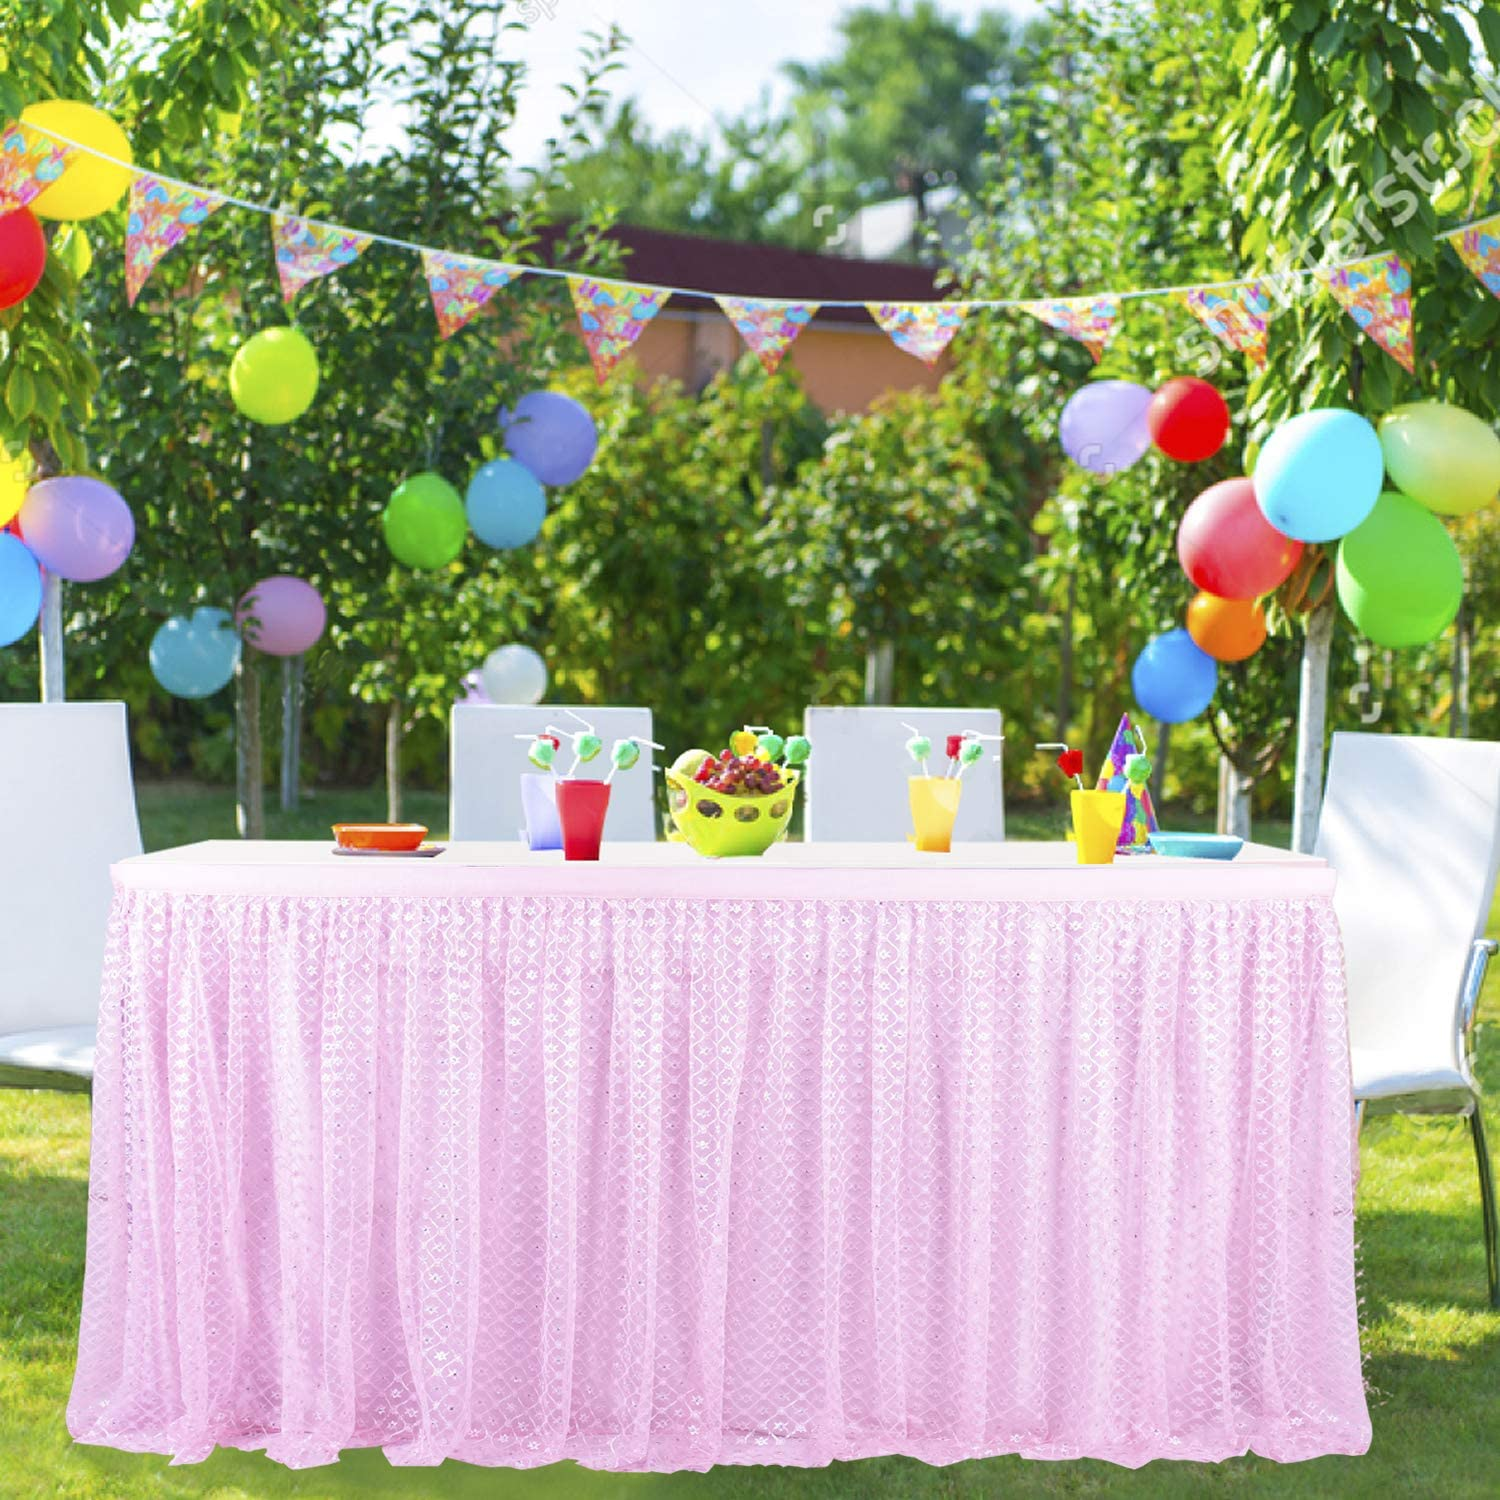 Leegleri 9ft Tulle Table Skirt for Rectangle or Round Table Pink Tutu Table Skirt with Silver Plum Embroidered for Baby Shower Party Wedding Birthday Decoration